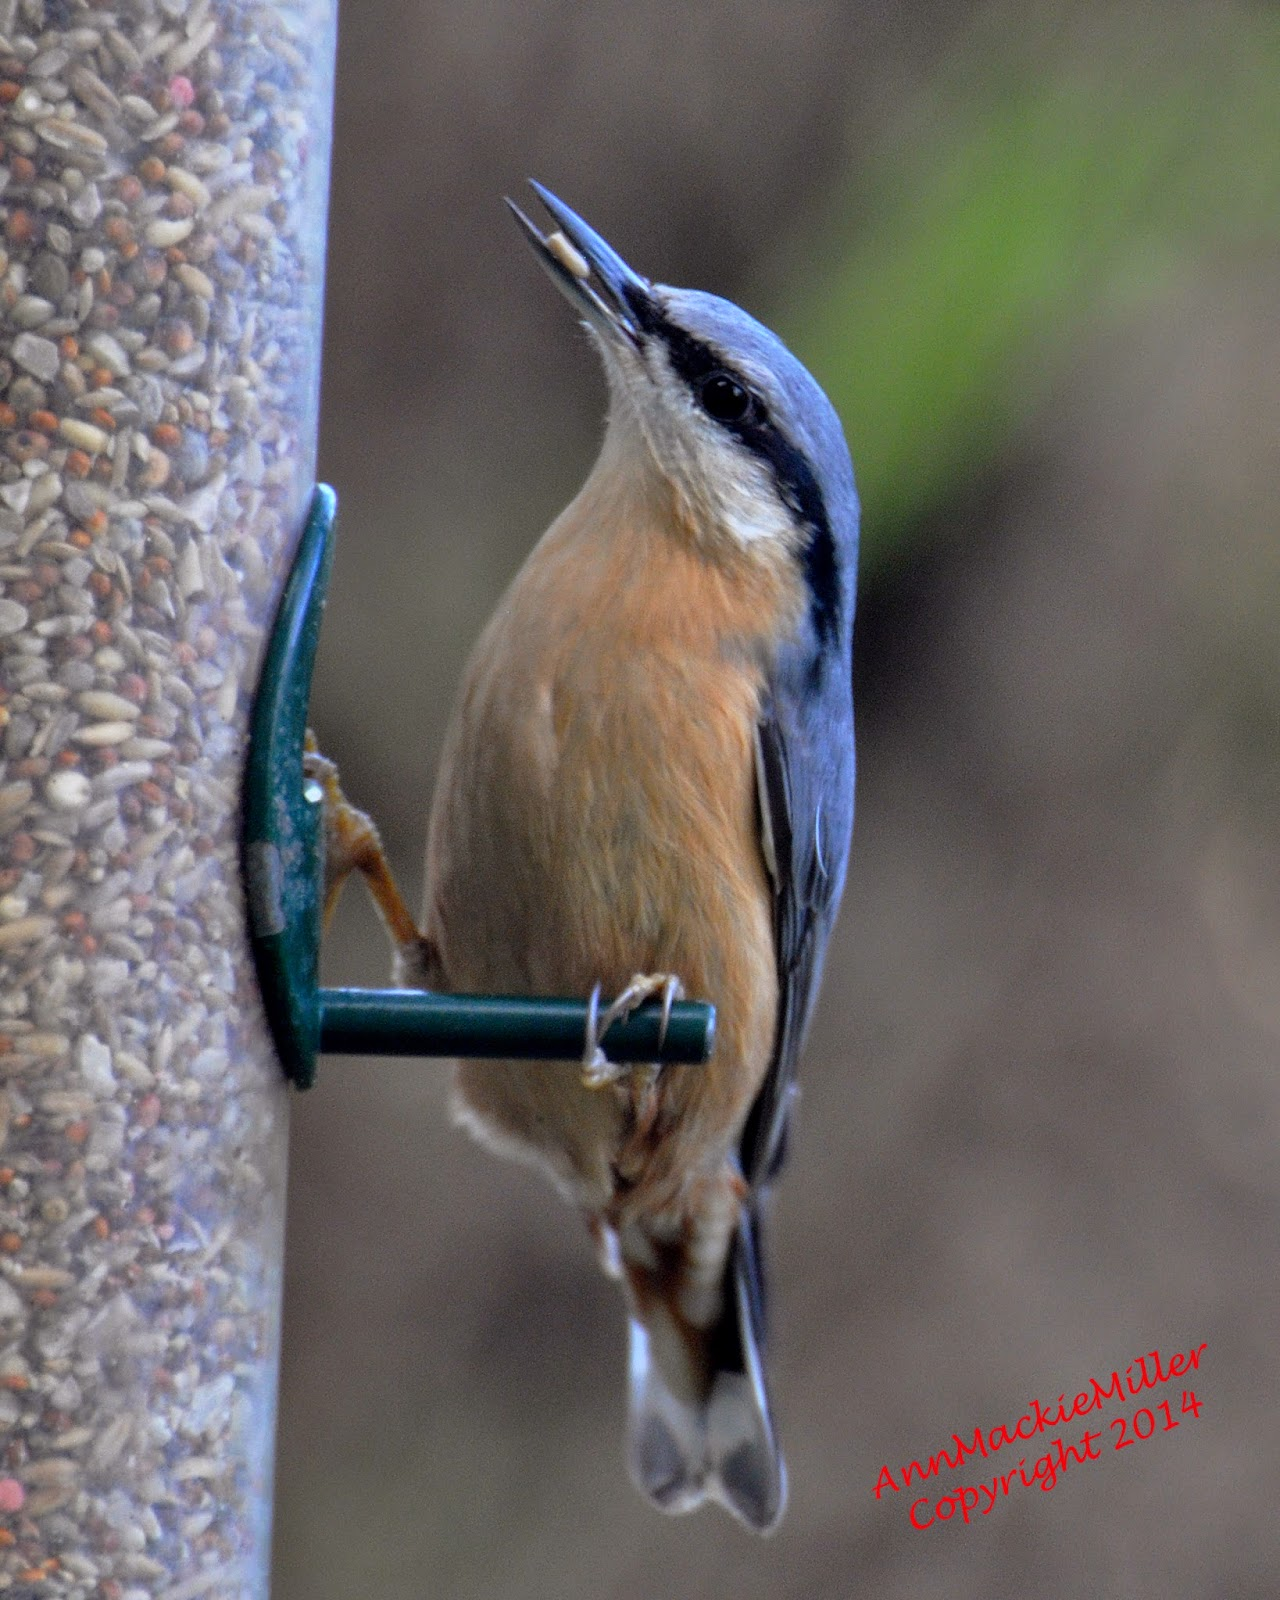 nuthatch perched on garden feeder with seed in beak